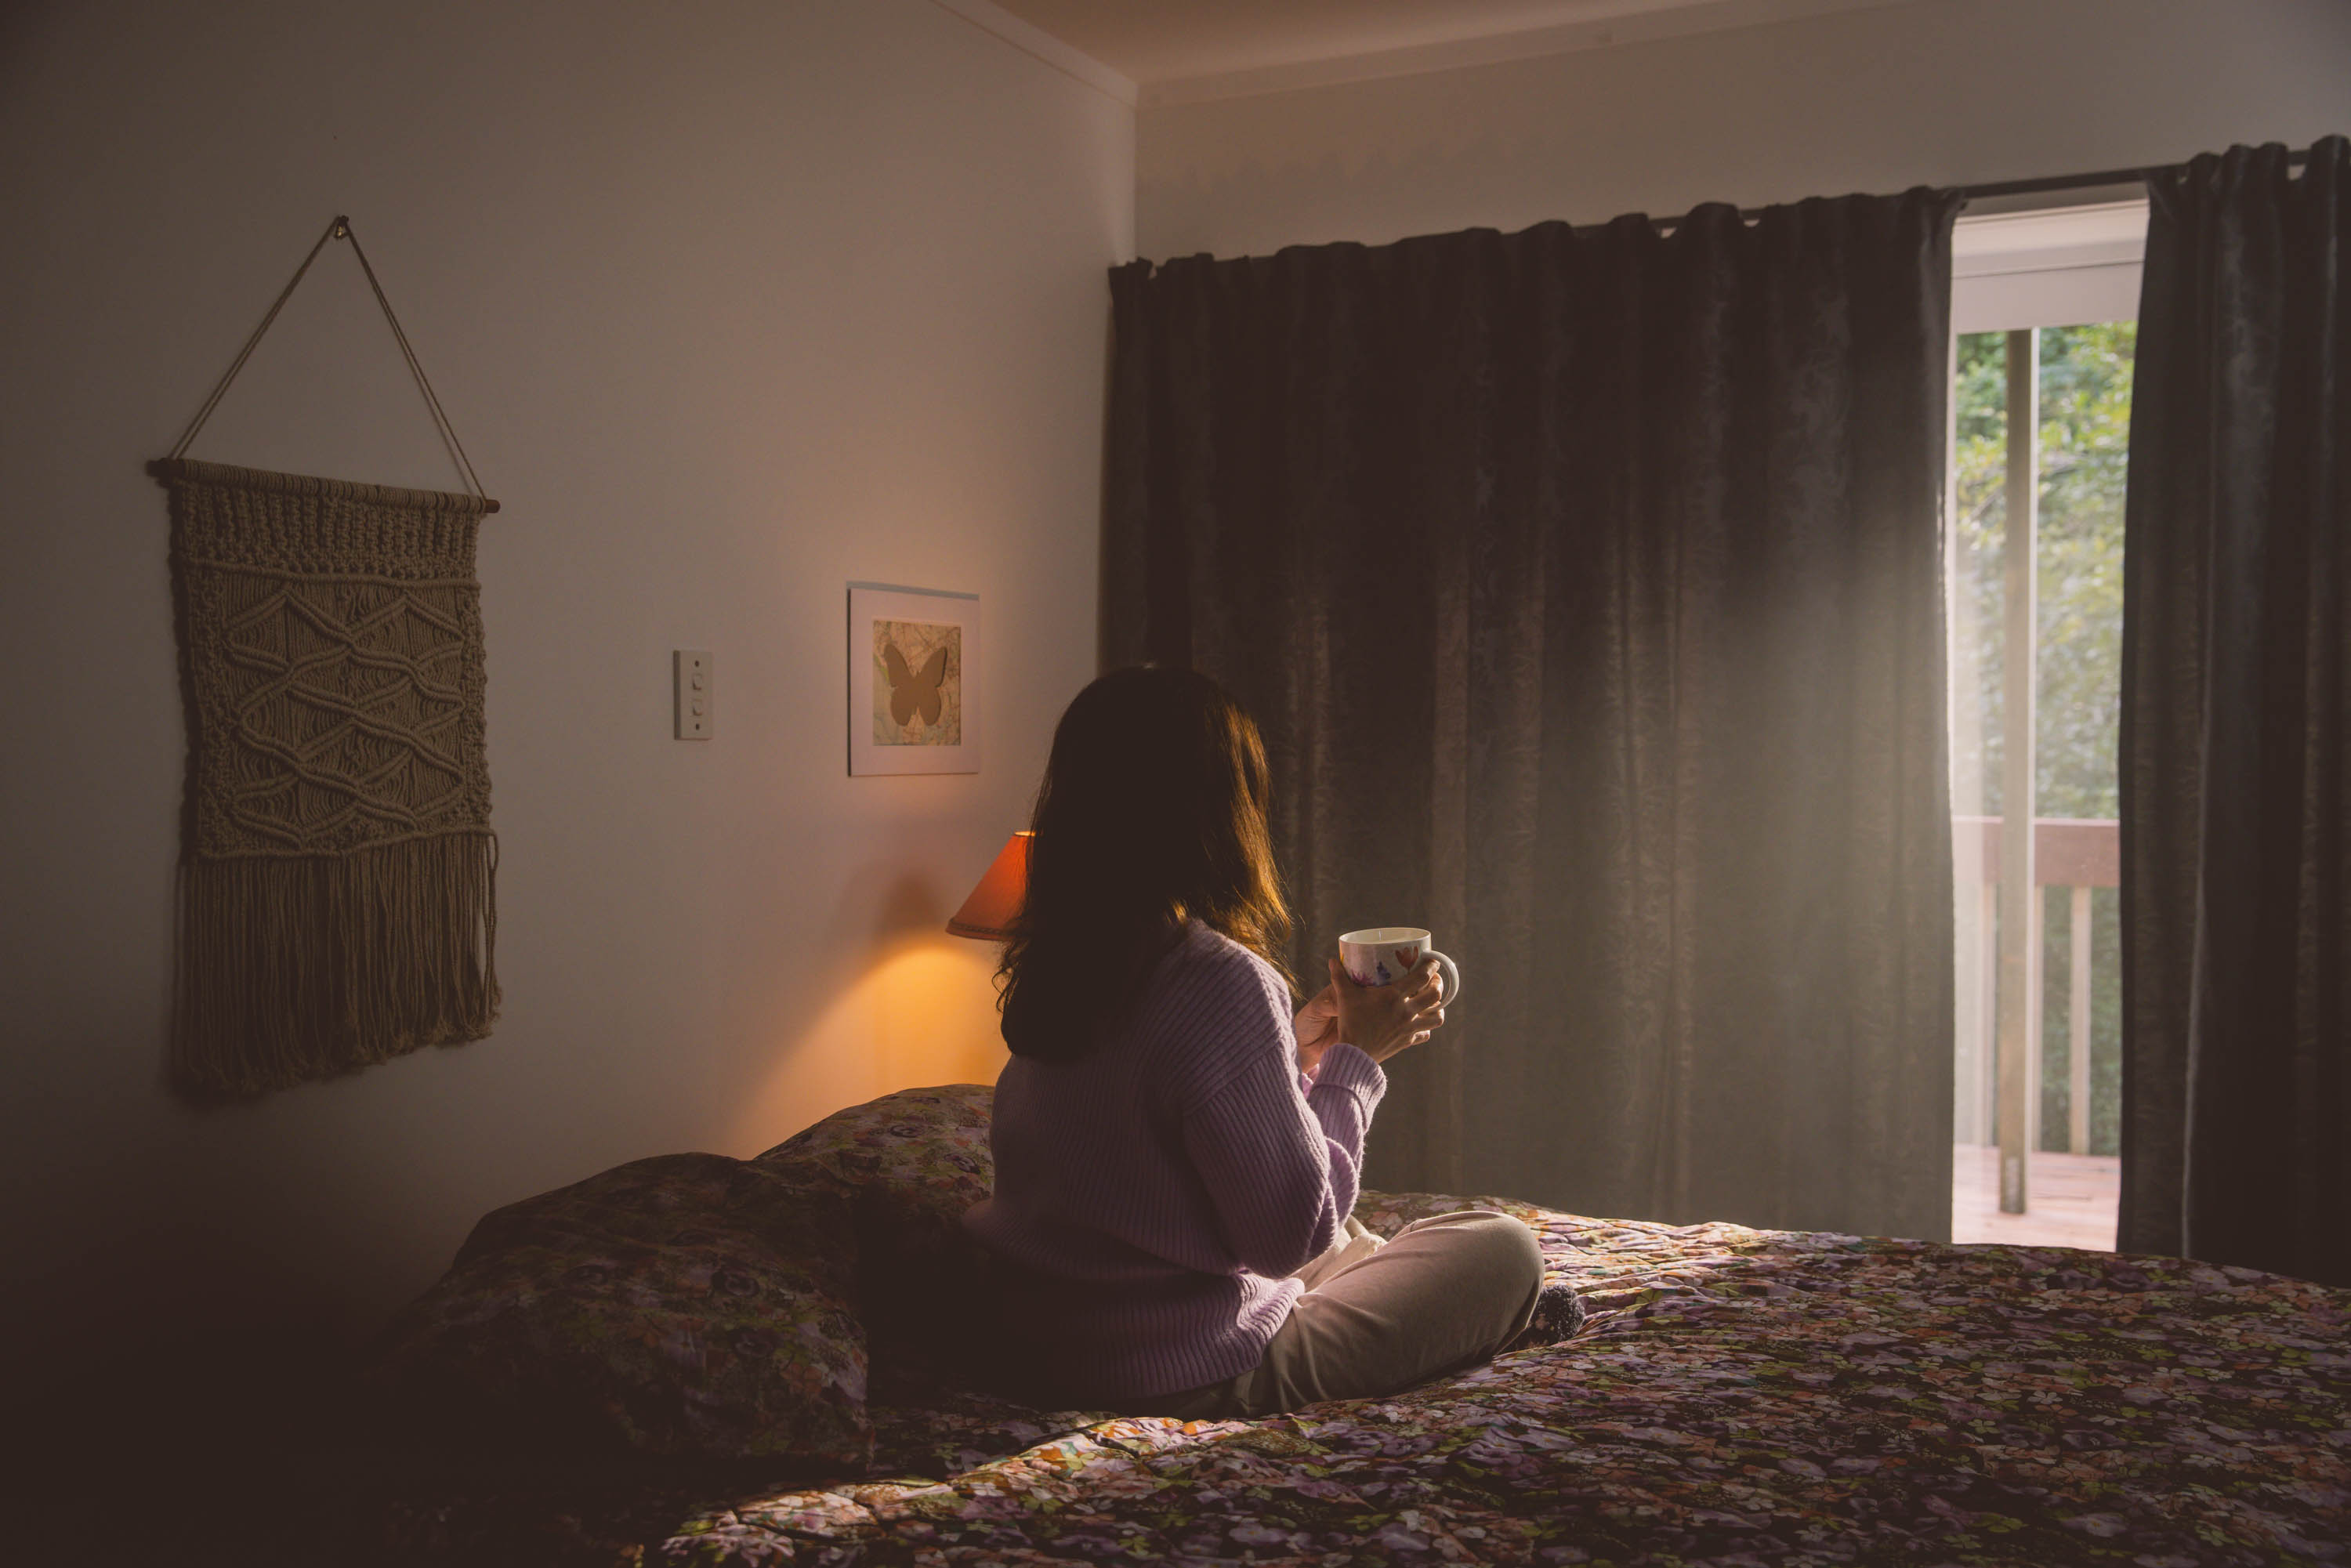 Film Construction creates 'Vignettes of Mental Health' for World Mental Health Day